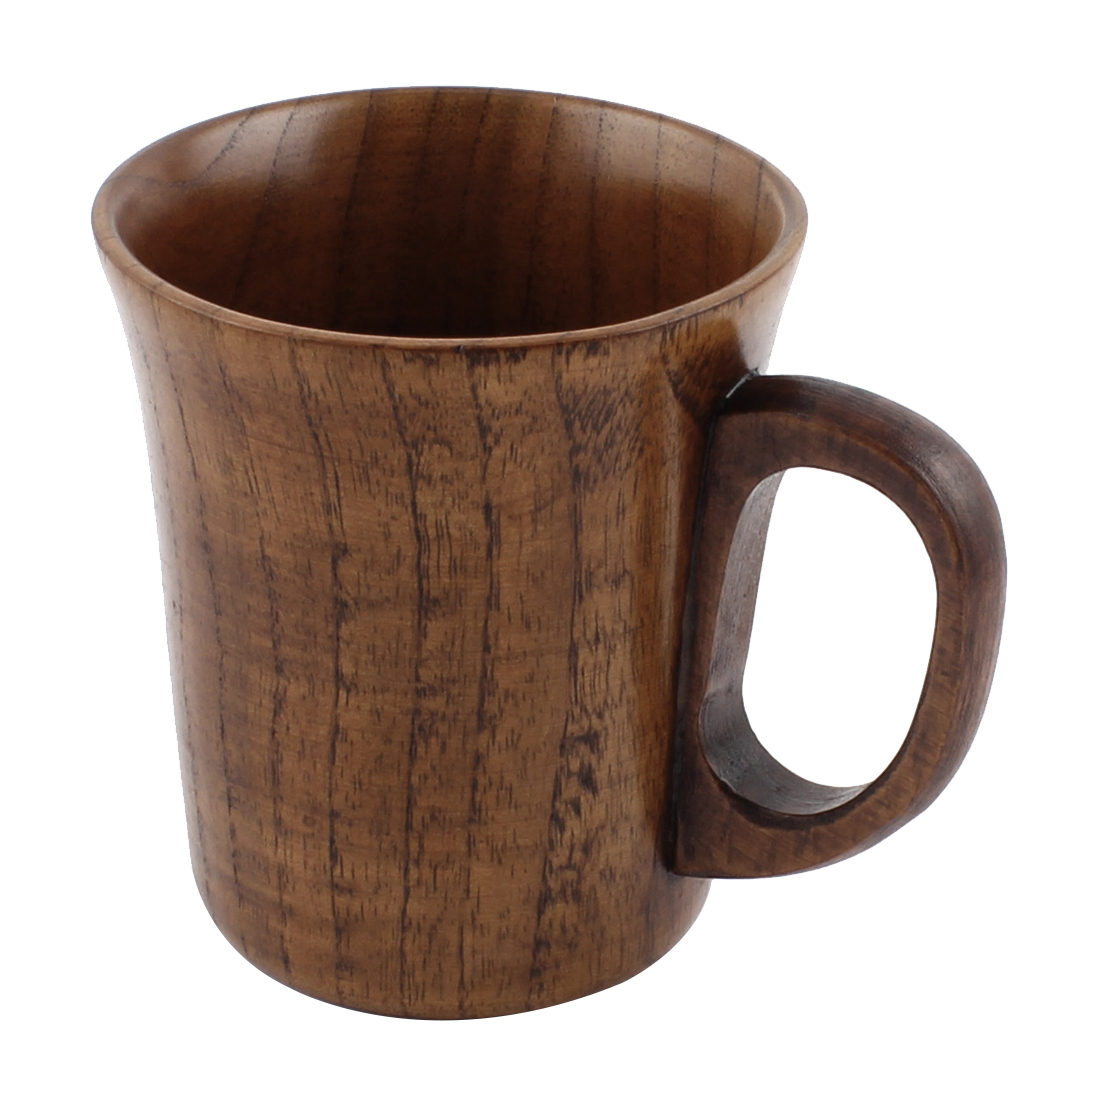 "Wooden Handgrip Home Water Tea Milk Coffee Beer Drinking Mug Cup Brown 4"" Height"